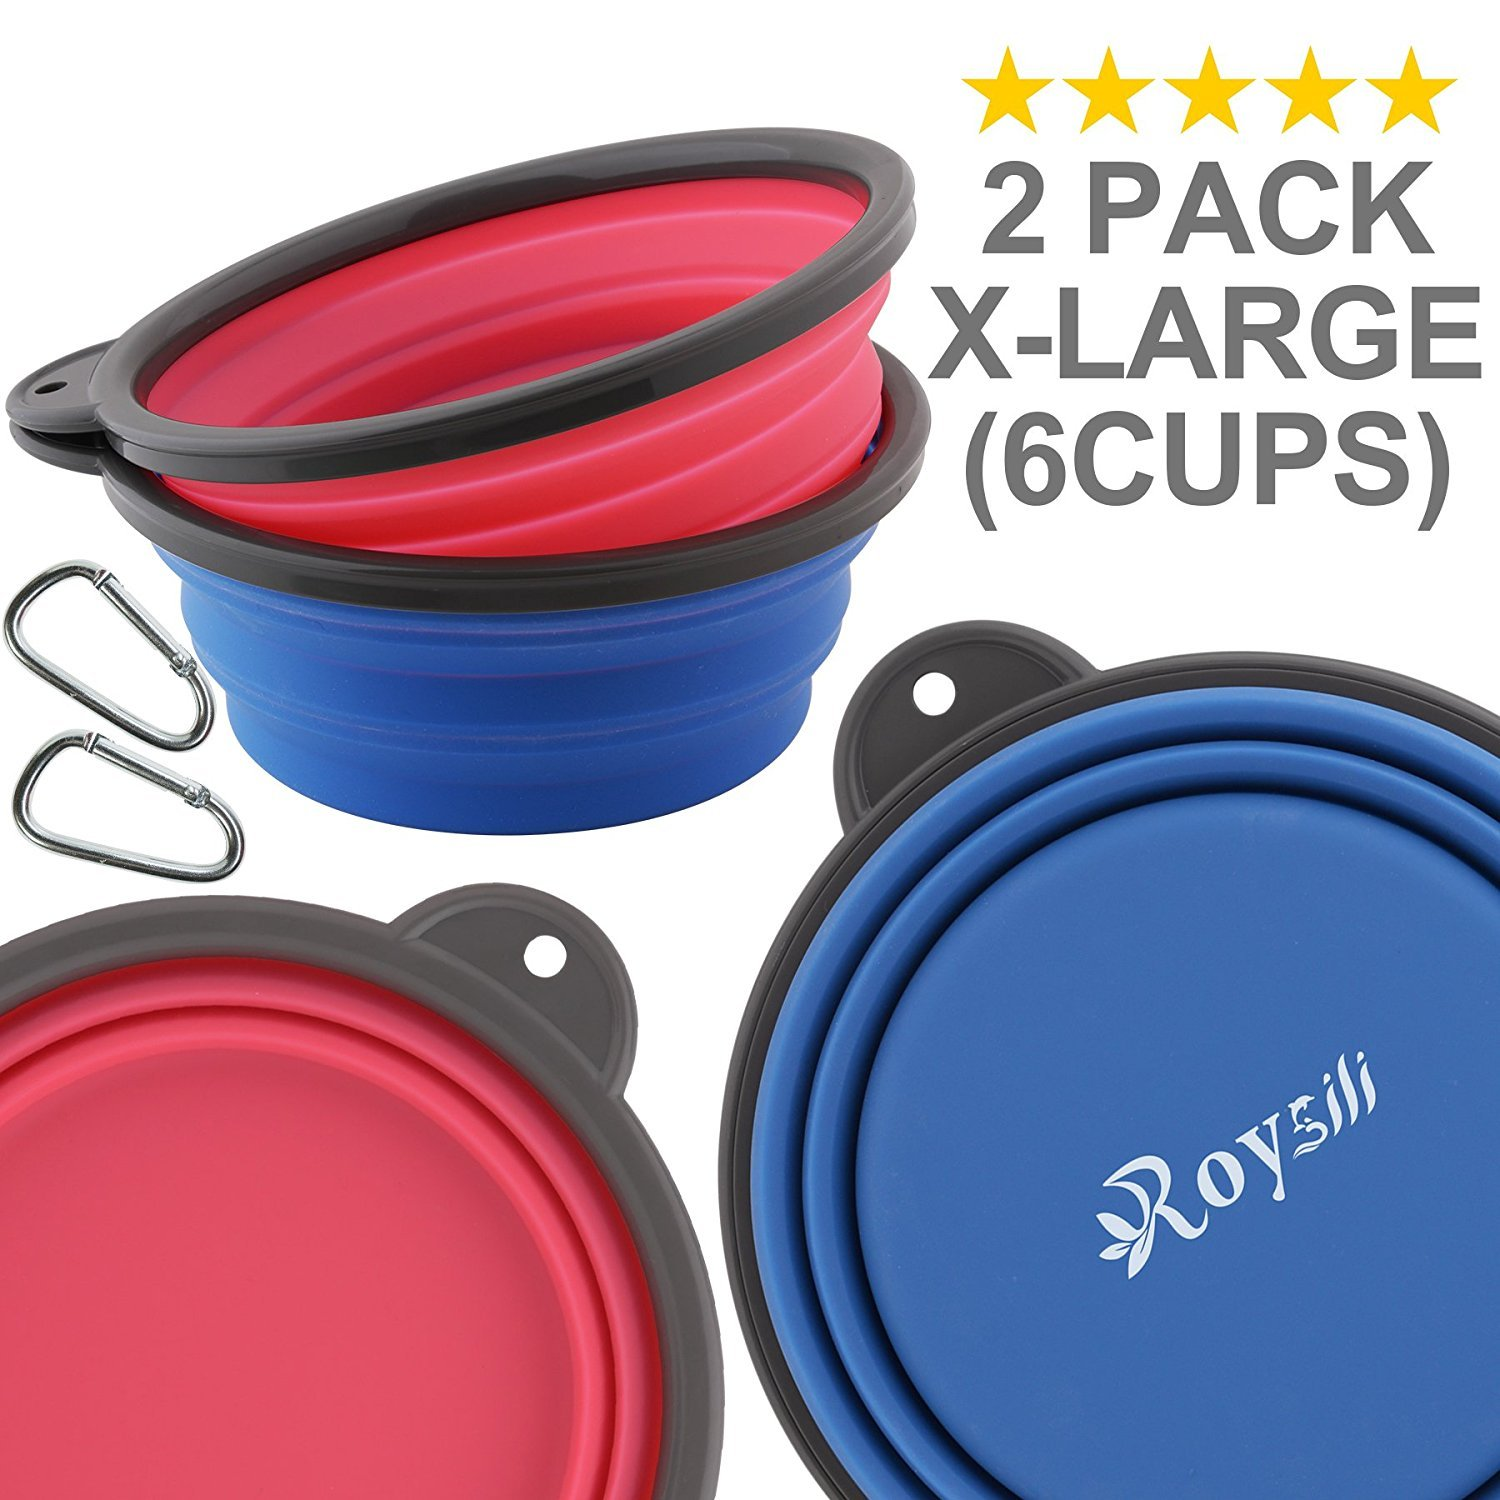 Roysili Extra Large 2Pack Collapsible Water Bowl 6 Cup, Silicone Travel Bowl for Dog Cat Food Water, Foldable Expandable Cup Dish Feeder,Portable Travel Dog Bowl for Camping & Hiking Blue and Pink